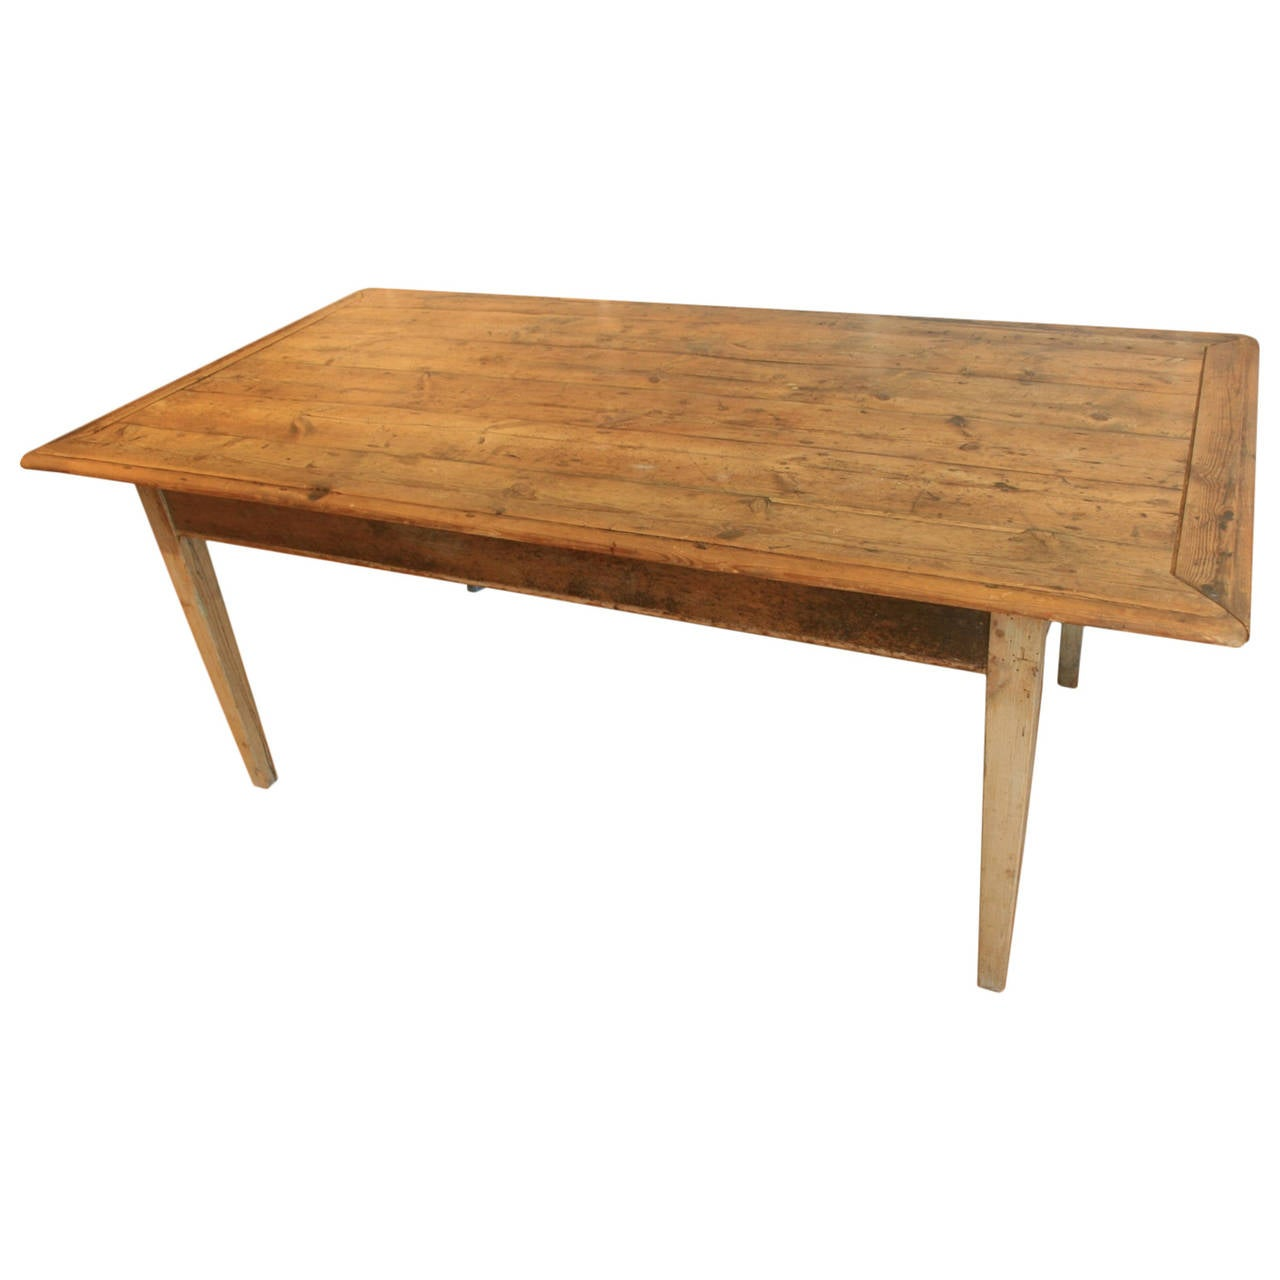 19th Century Irish Scrubbed Pine Dining Table At 1stdibs